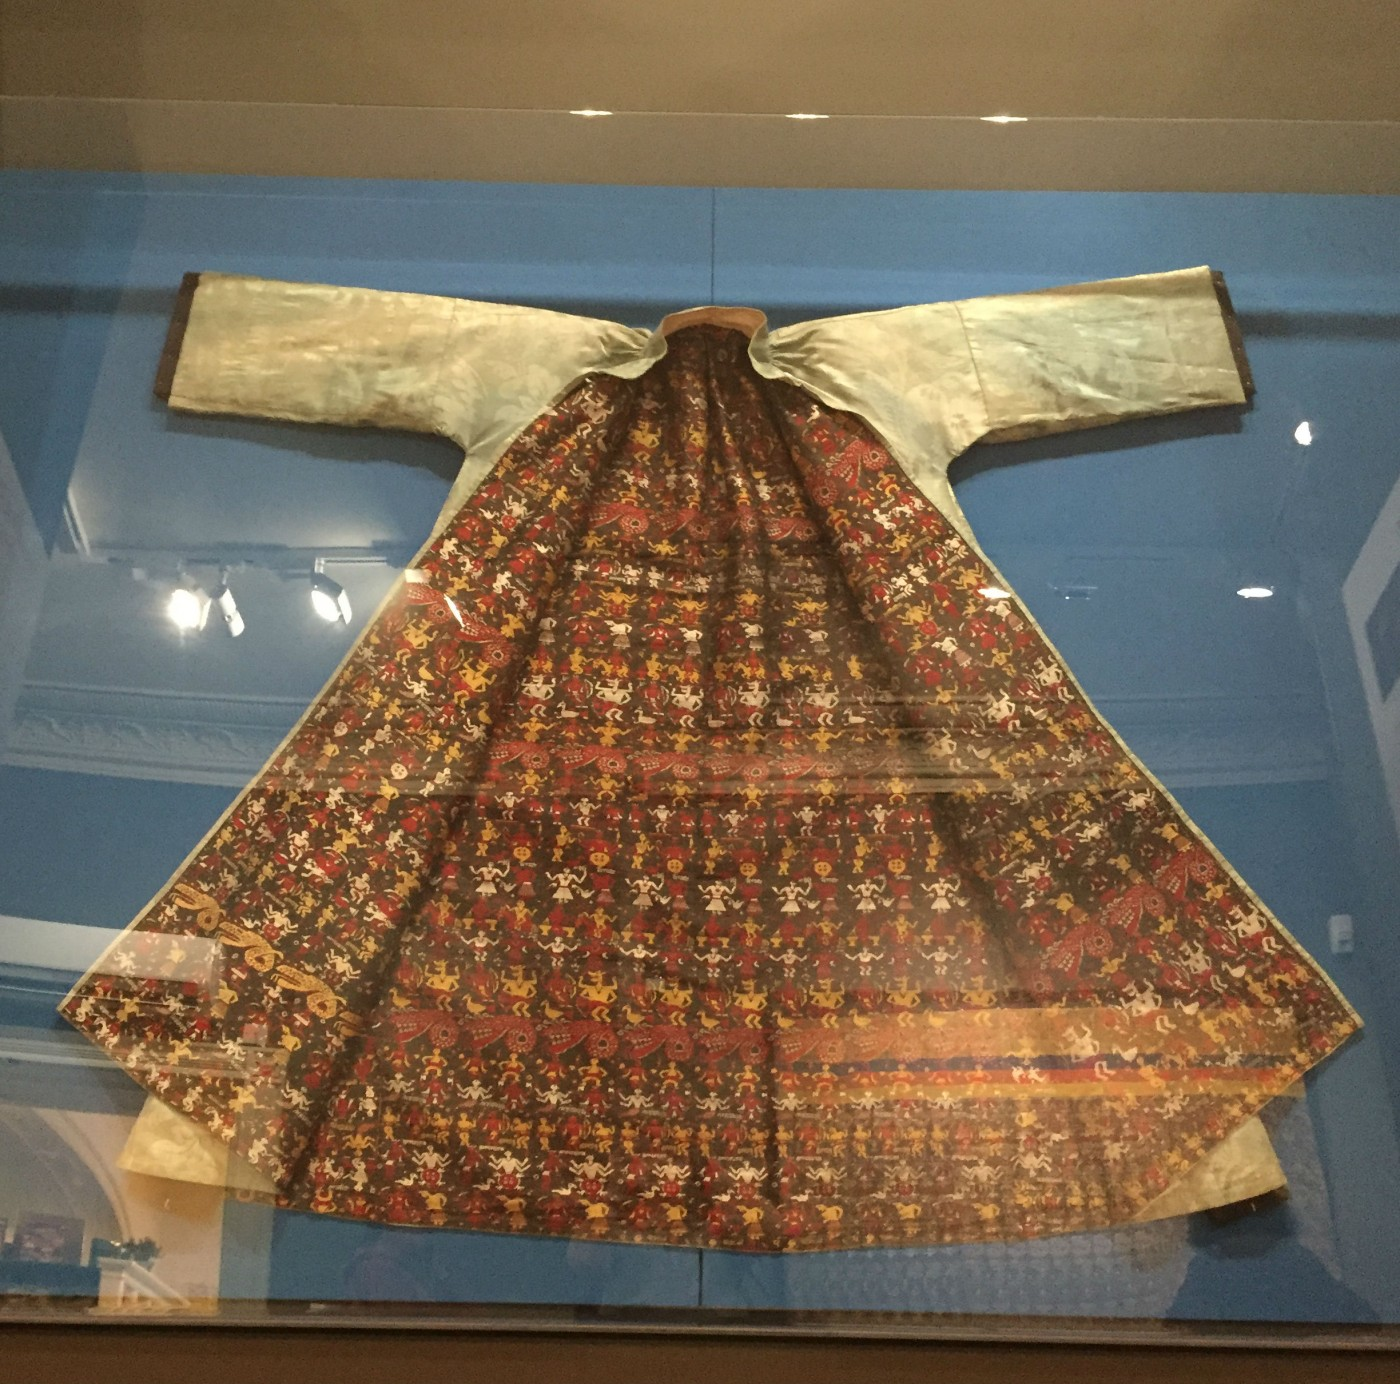 The Chepstow Coat on display at the Chepstow Museum in 'Hidden in the Lining - Krishna in the Garden of Assam', Photo by Olivia Gecseg, 2017